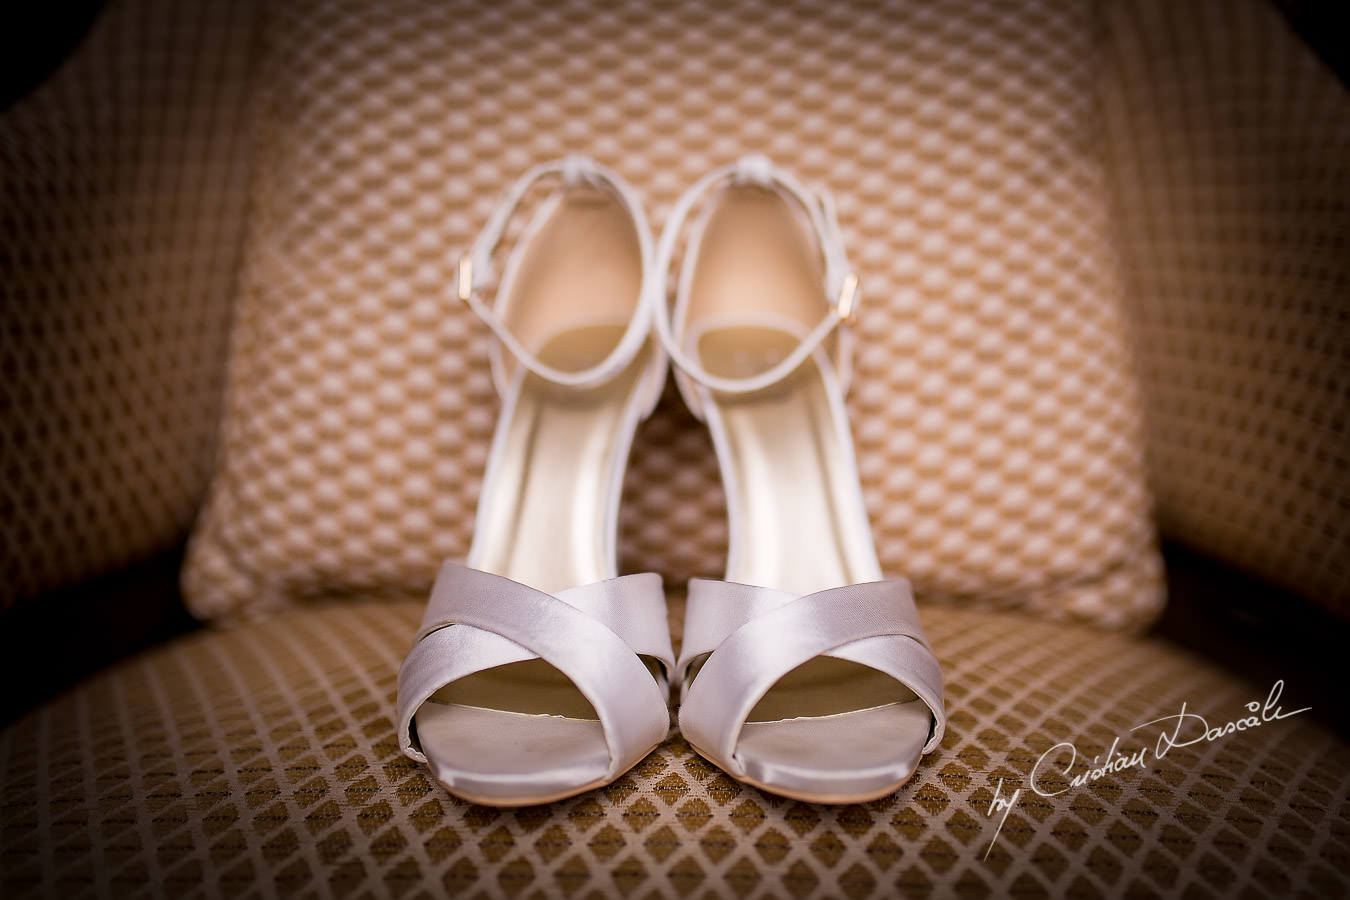 Bridal Shoes details at a Beautiful Wedding at Elias Beach Hotel captured by Cyprus Photographer Cristian Dascalu.